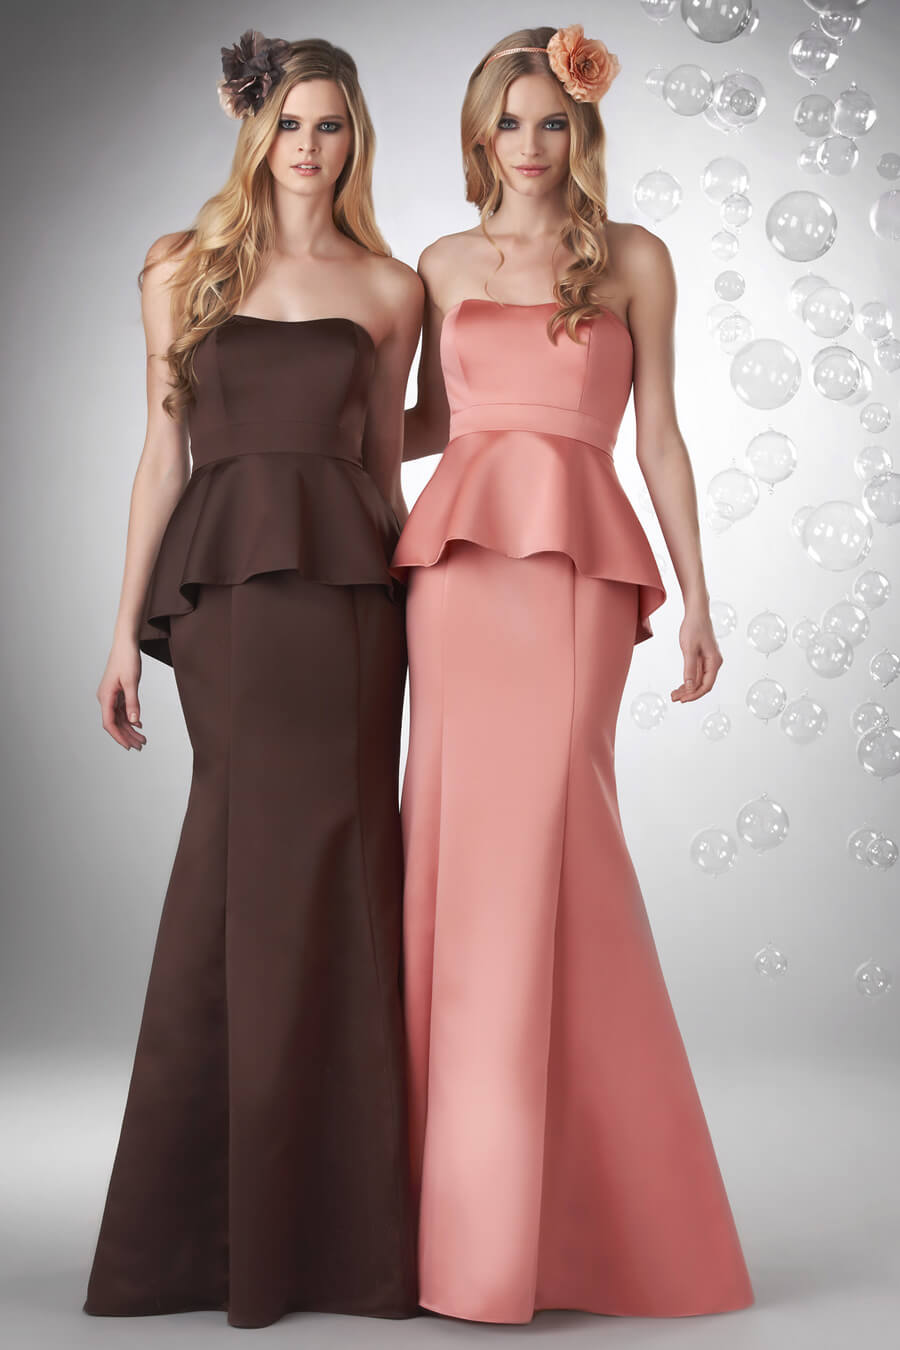 Bari jay bridesmaids bridesmaid dresses prom dresses formal bari jay bridesmaids bridesmaid dresses prom dresses formal gowns bari jay and shimmer ombrellifo Gallery